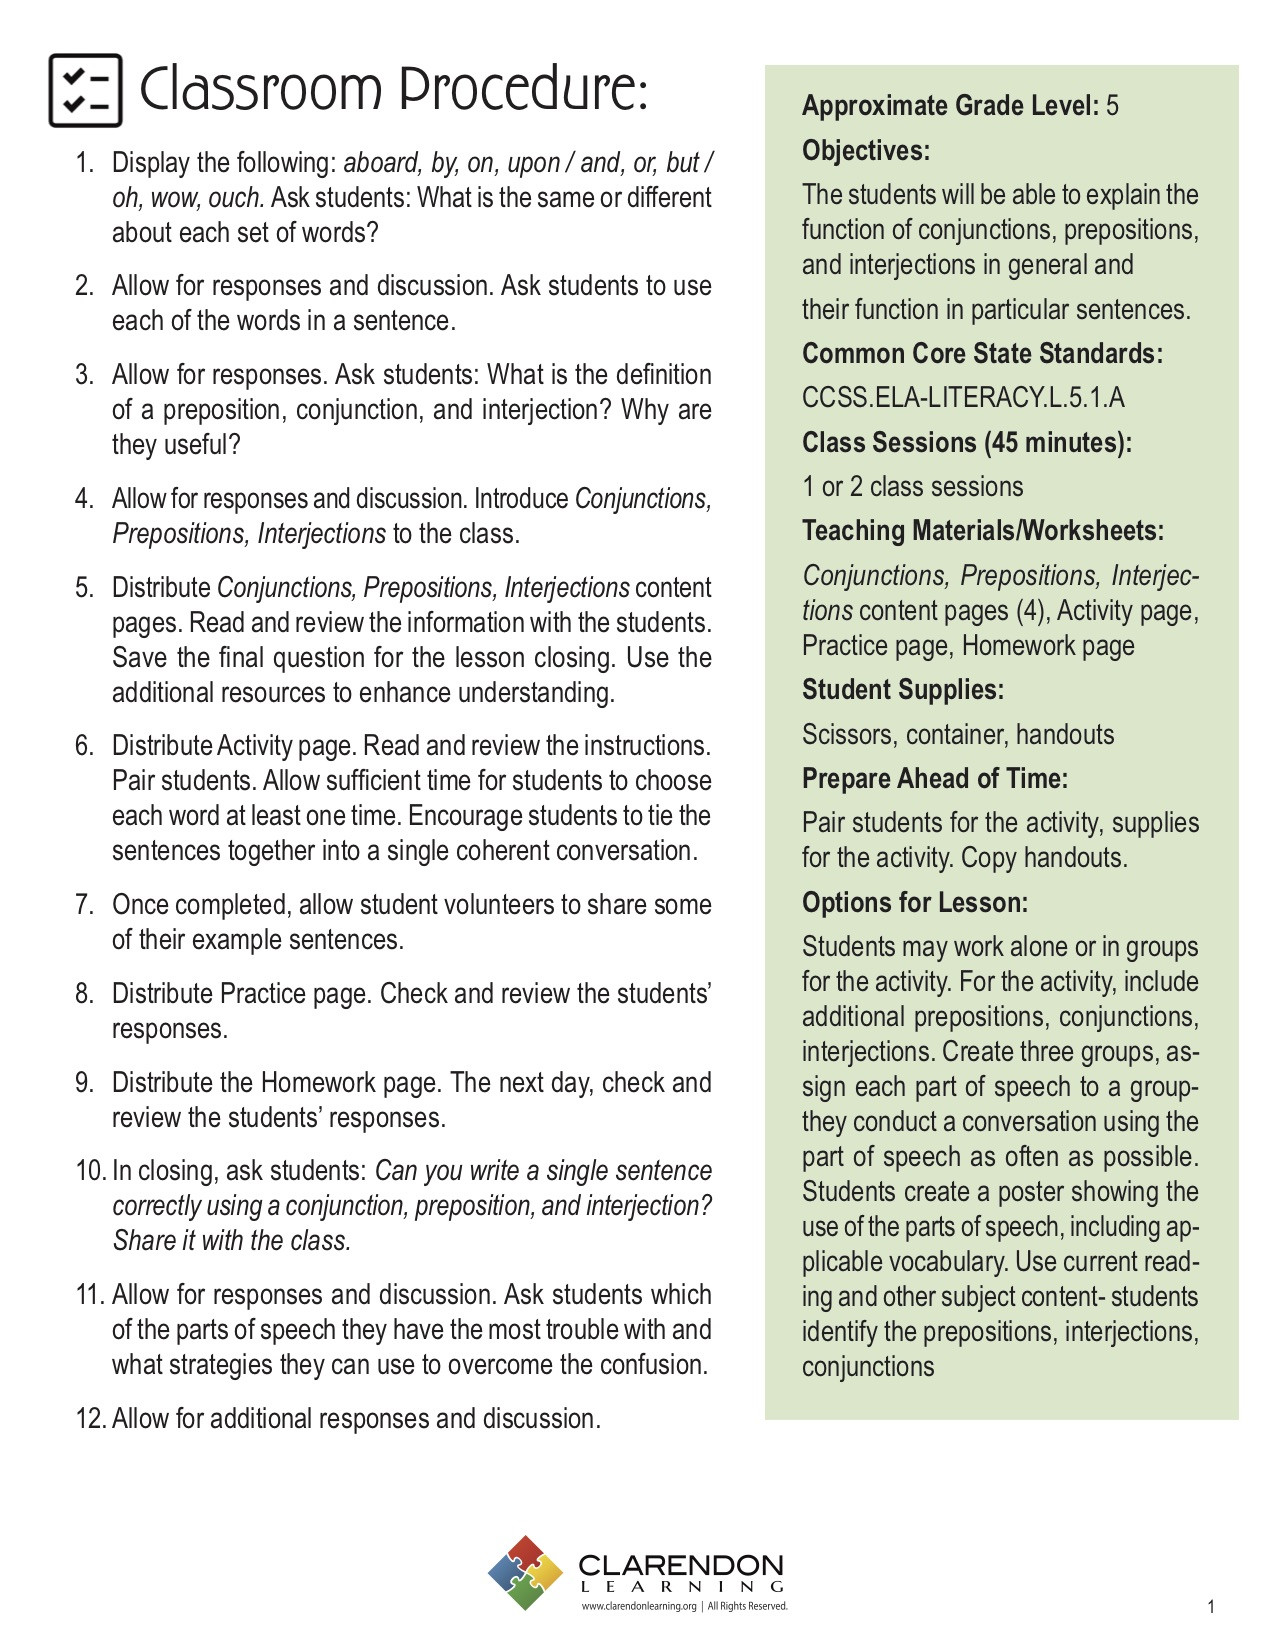 Conjunction Worksheet 5th Grade Conjunctions Prepositions Interjections Lesson Plan